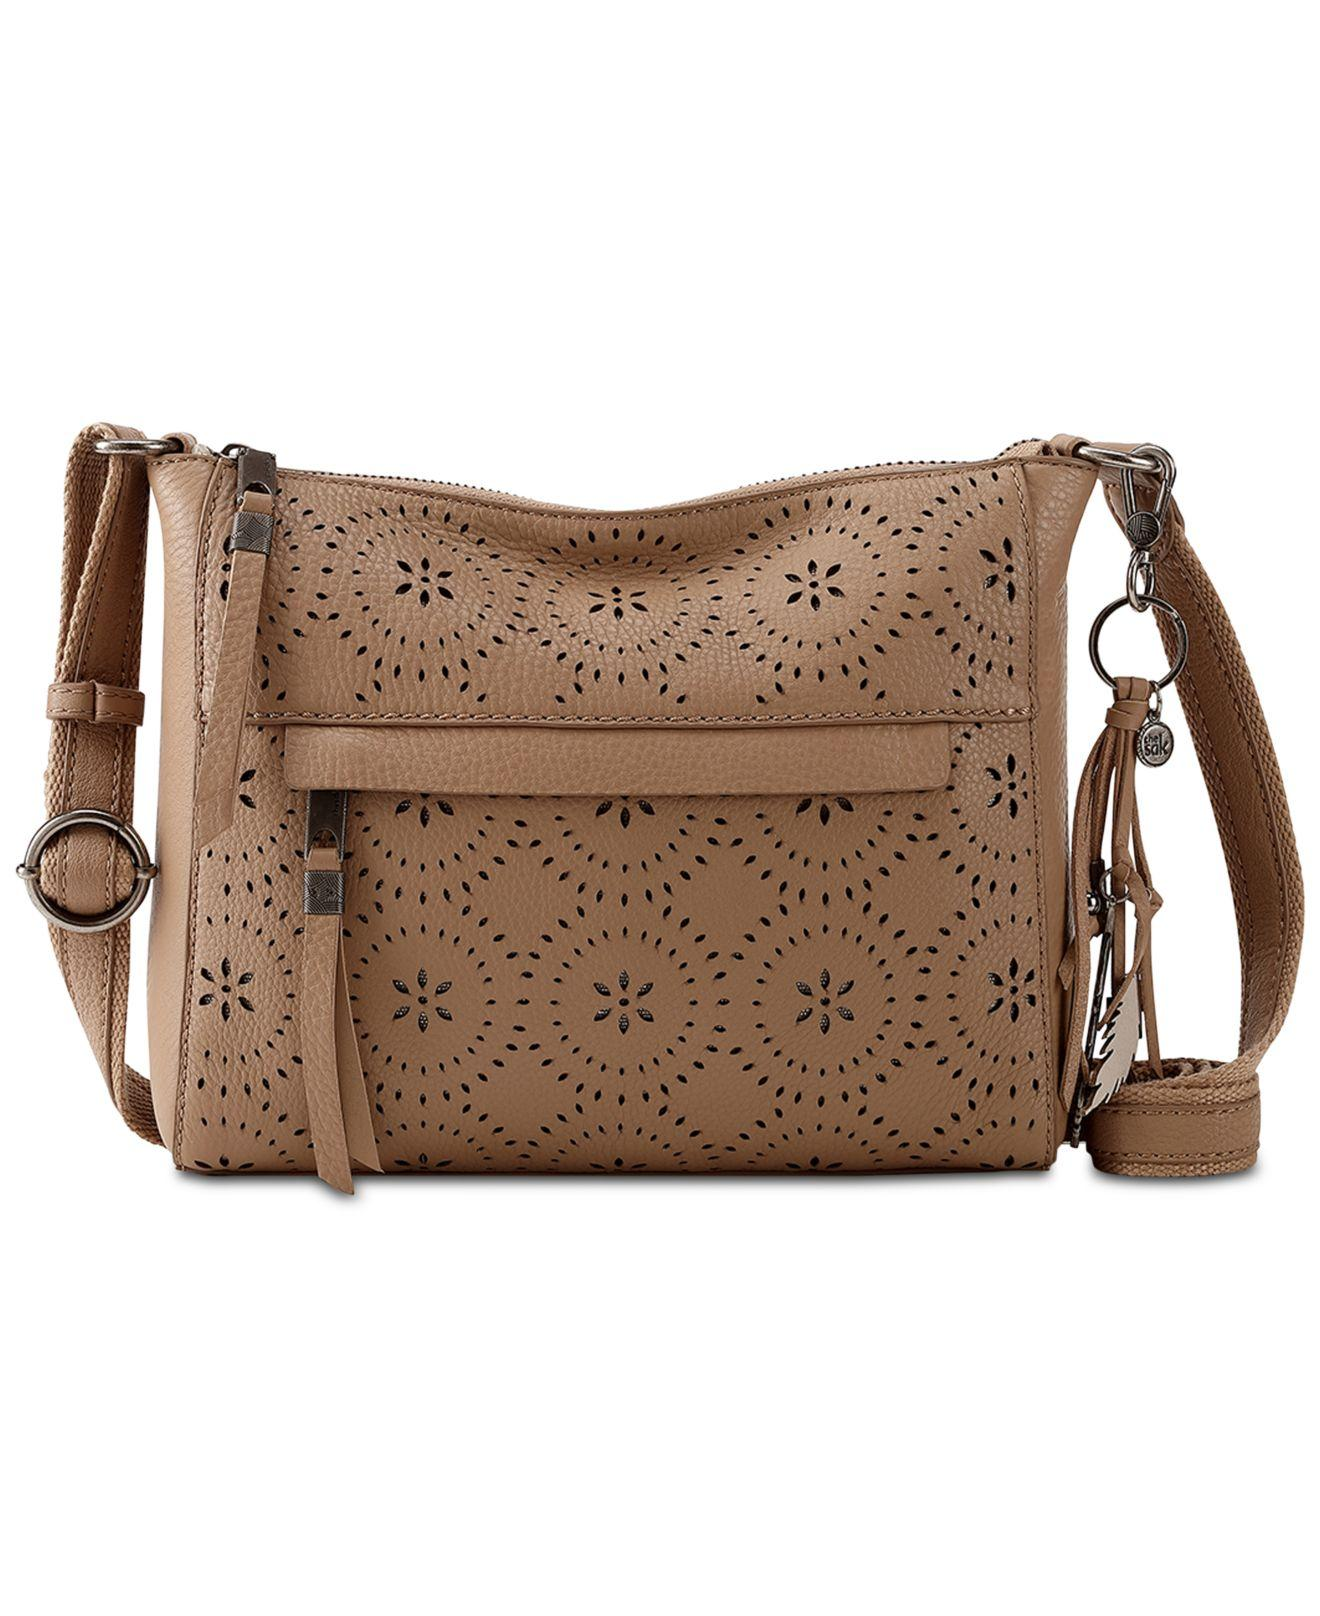 d2a34824b9e6 The Sak. Women s Alameda Perforated Crossbody